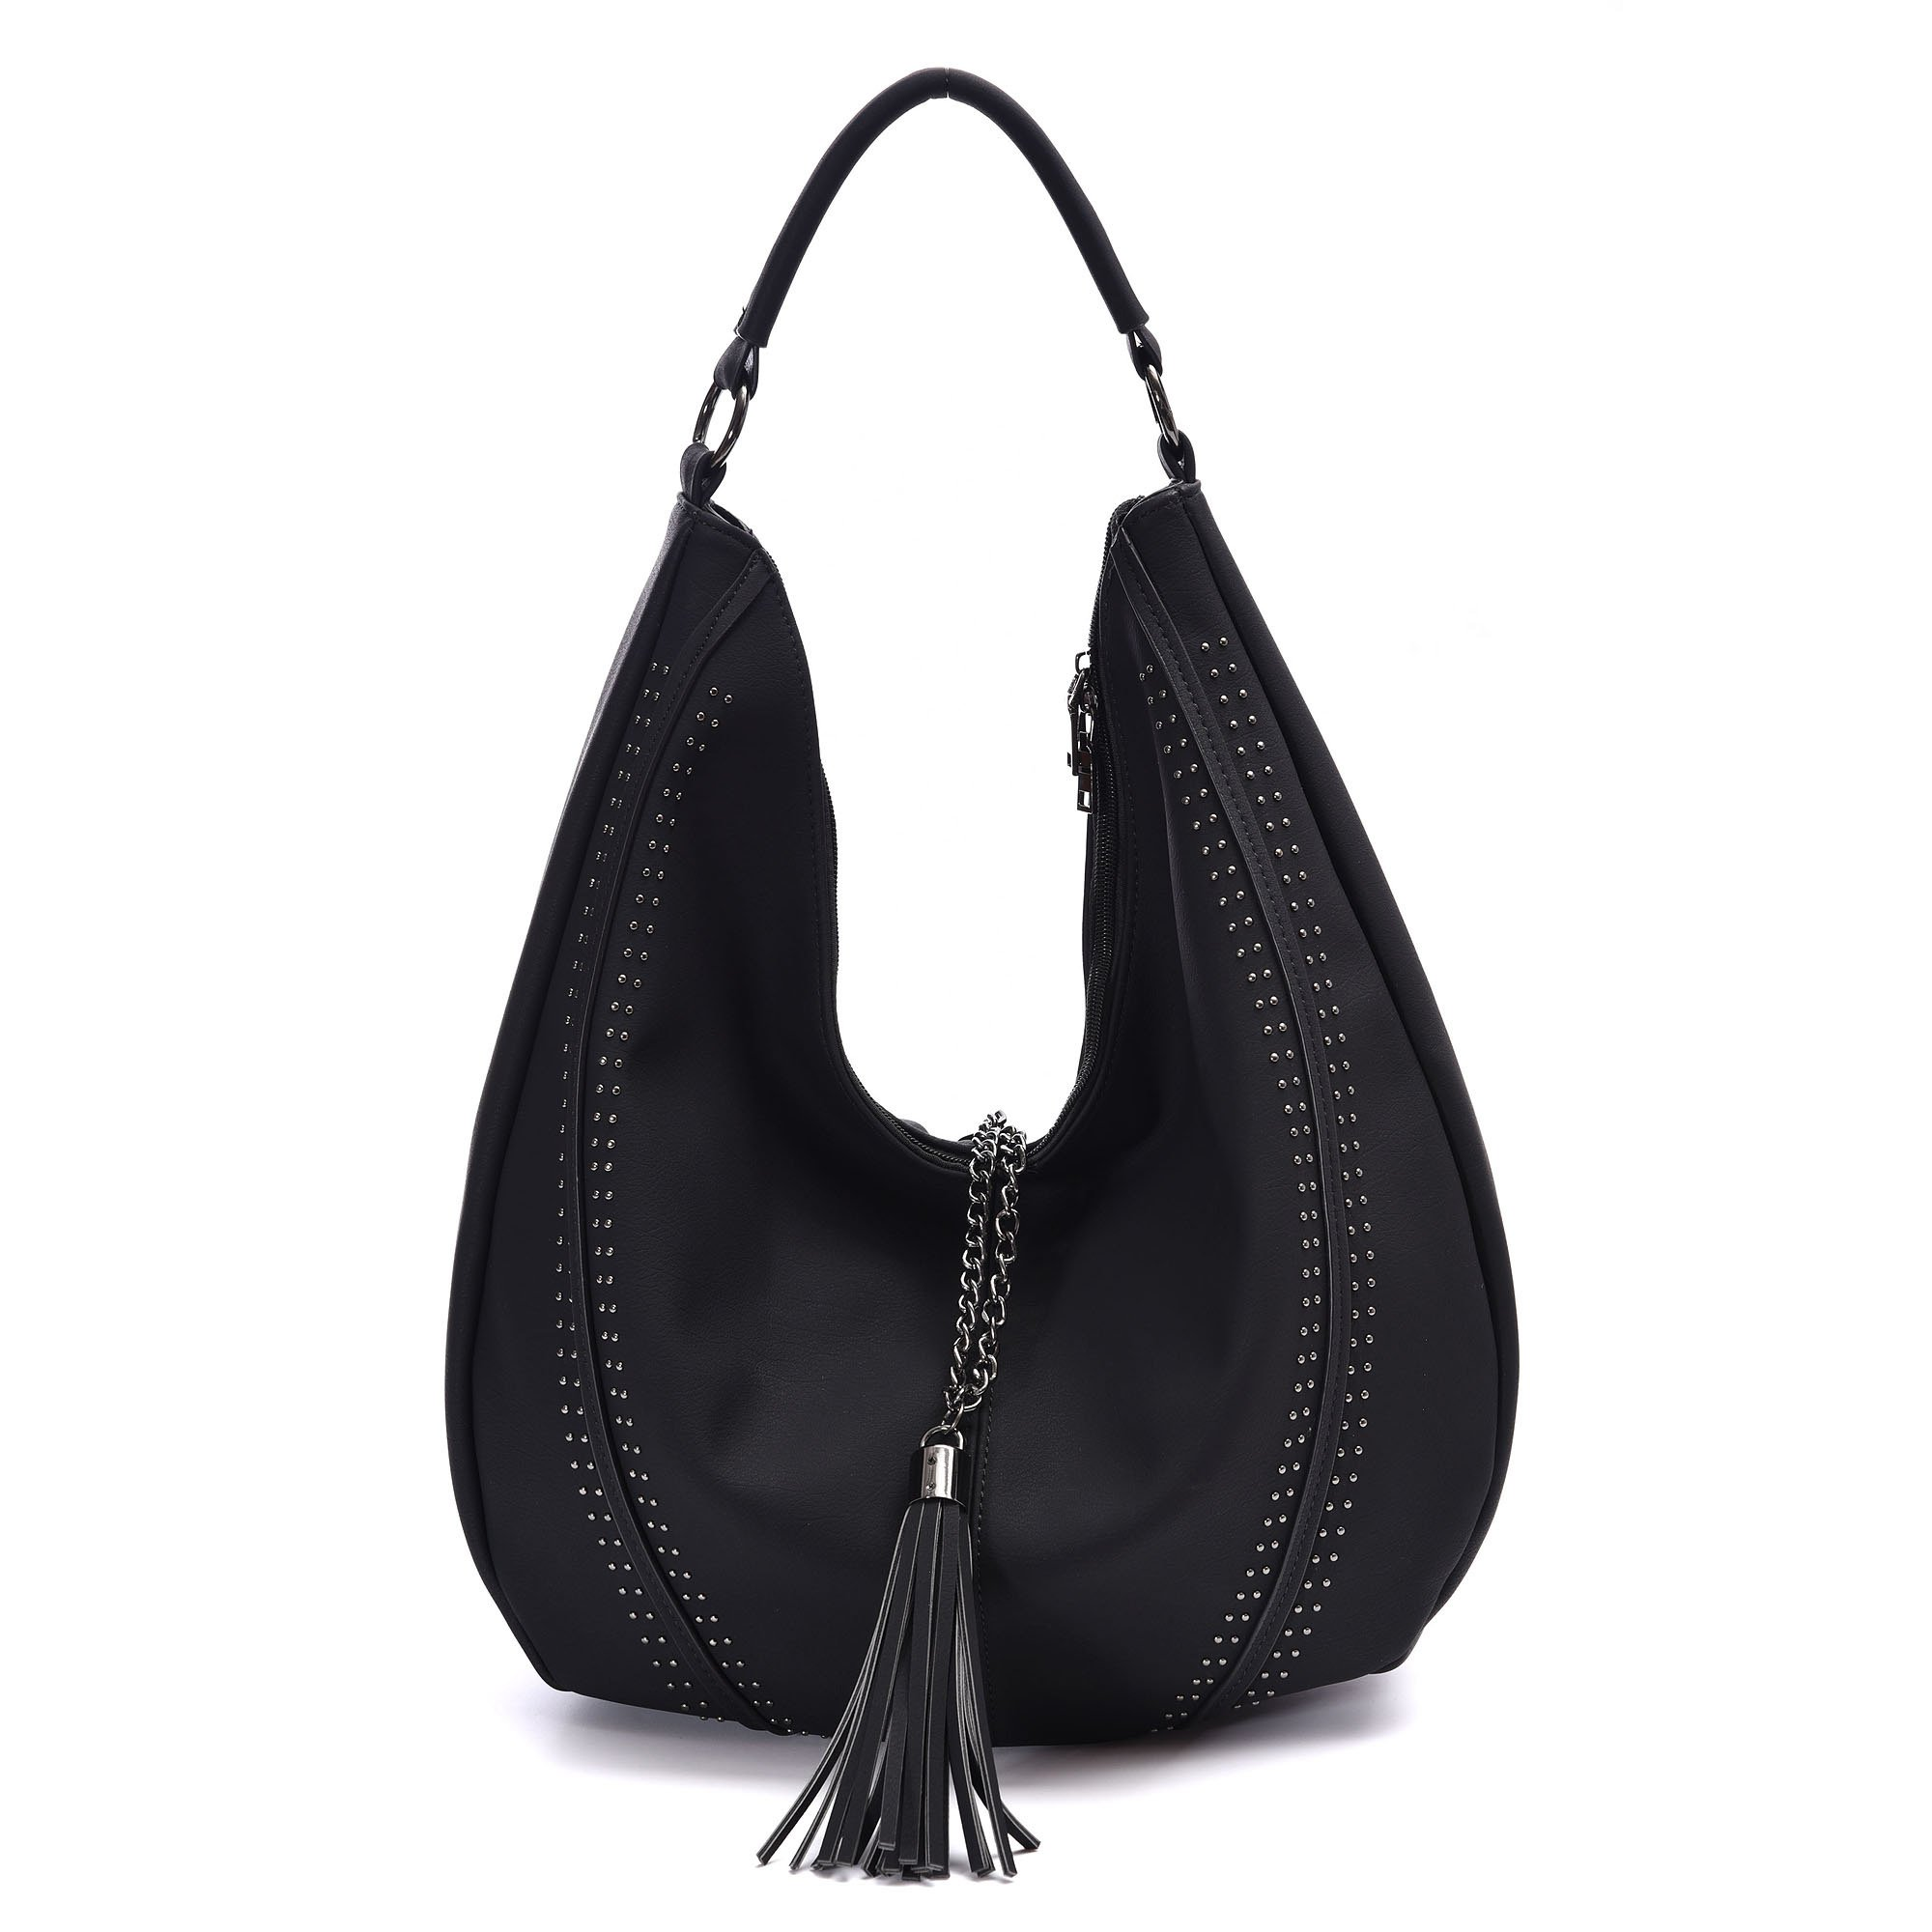 Handbags for Women, Hobo Shoulder Bags Of PU Leather Large Compacity Tote Purses With Tassel Decoration (Black)